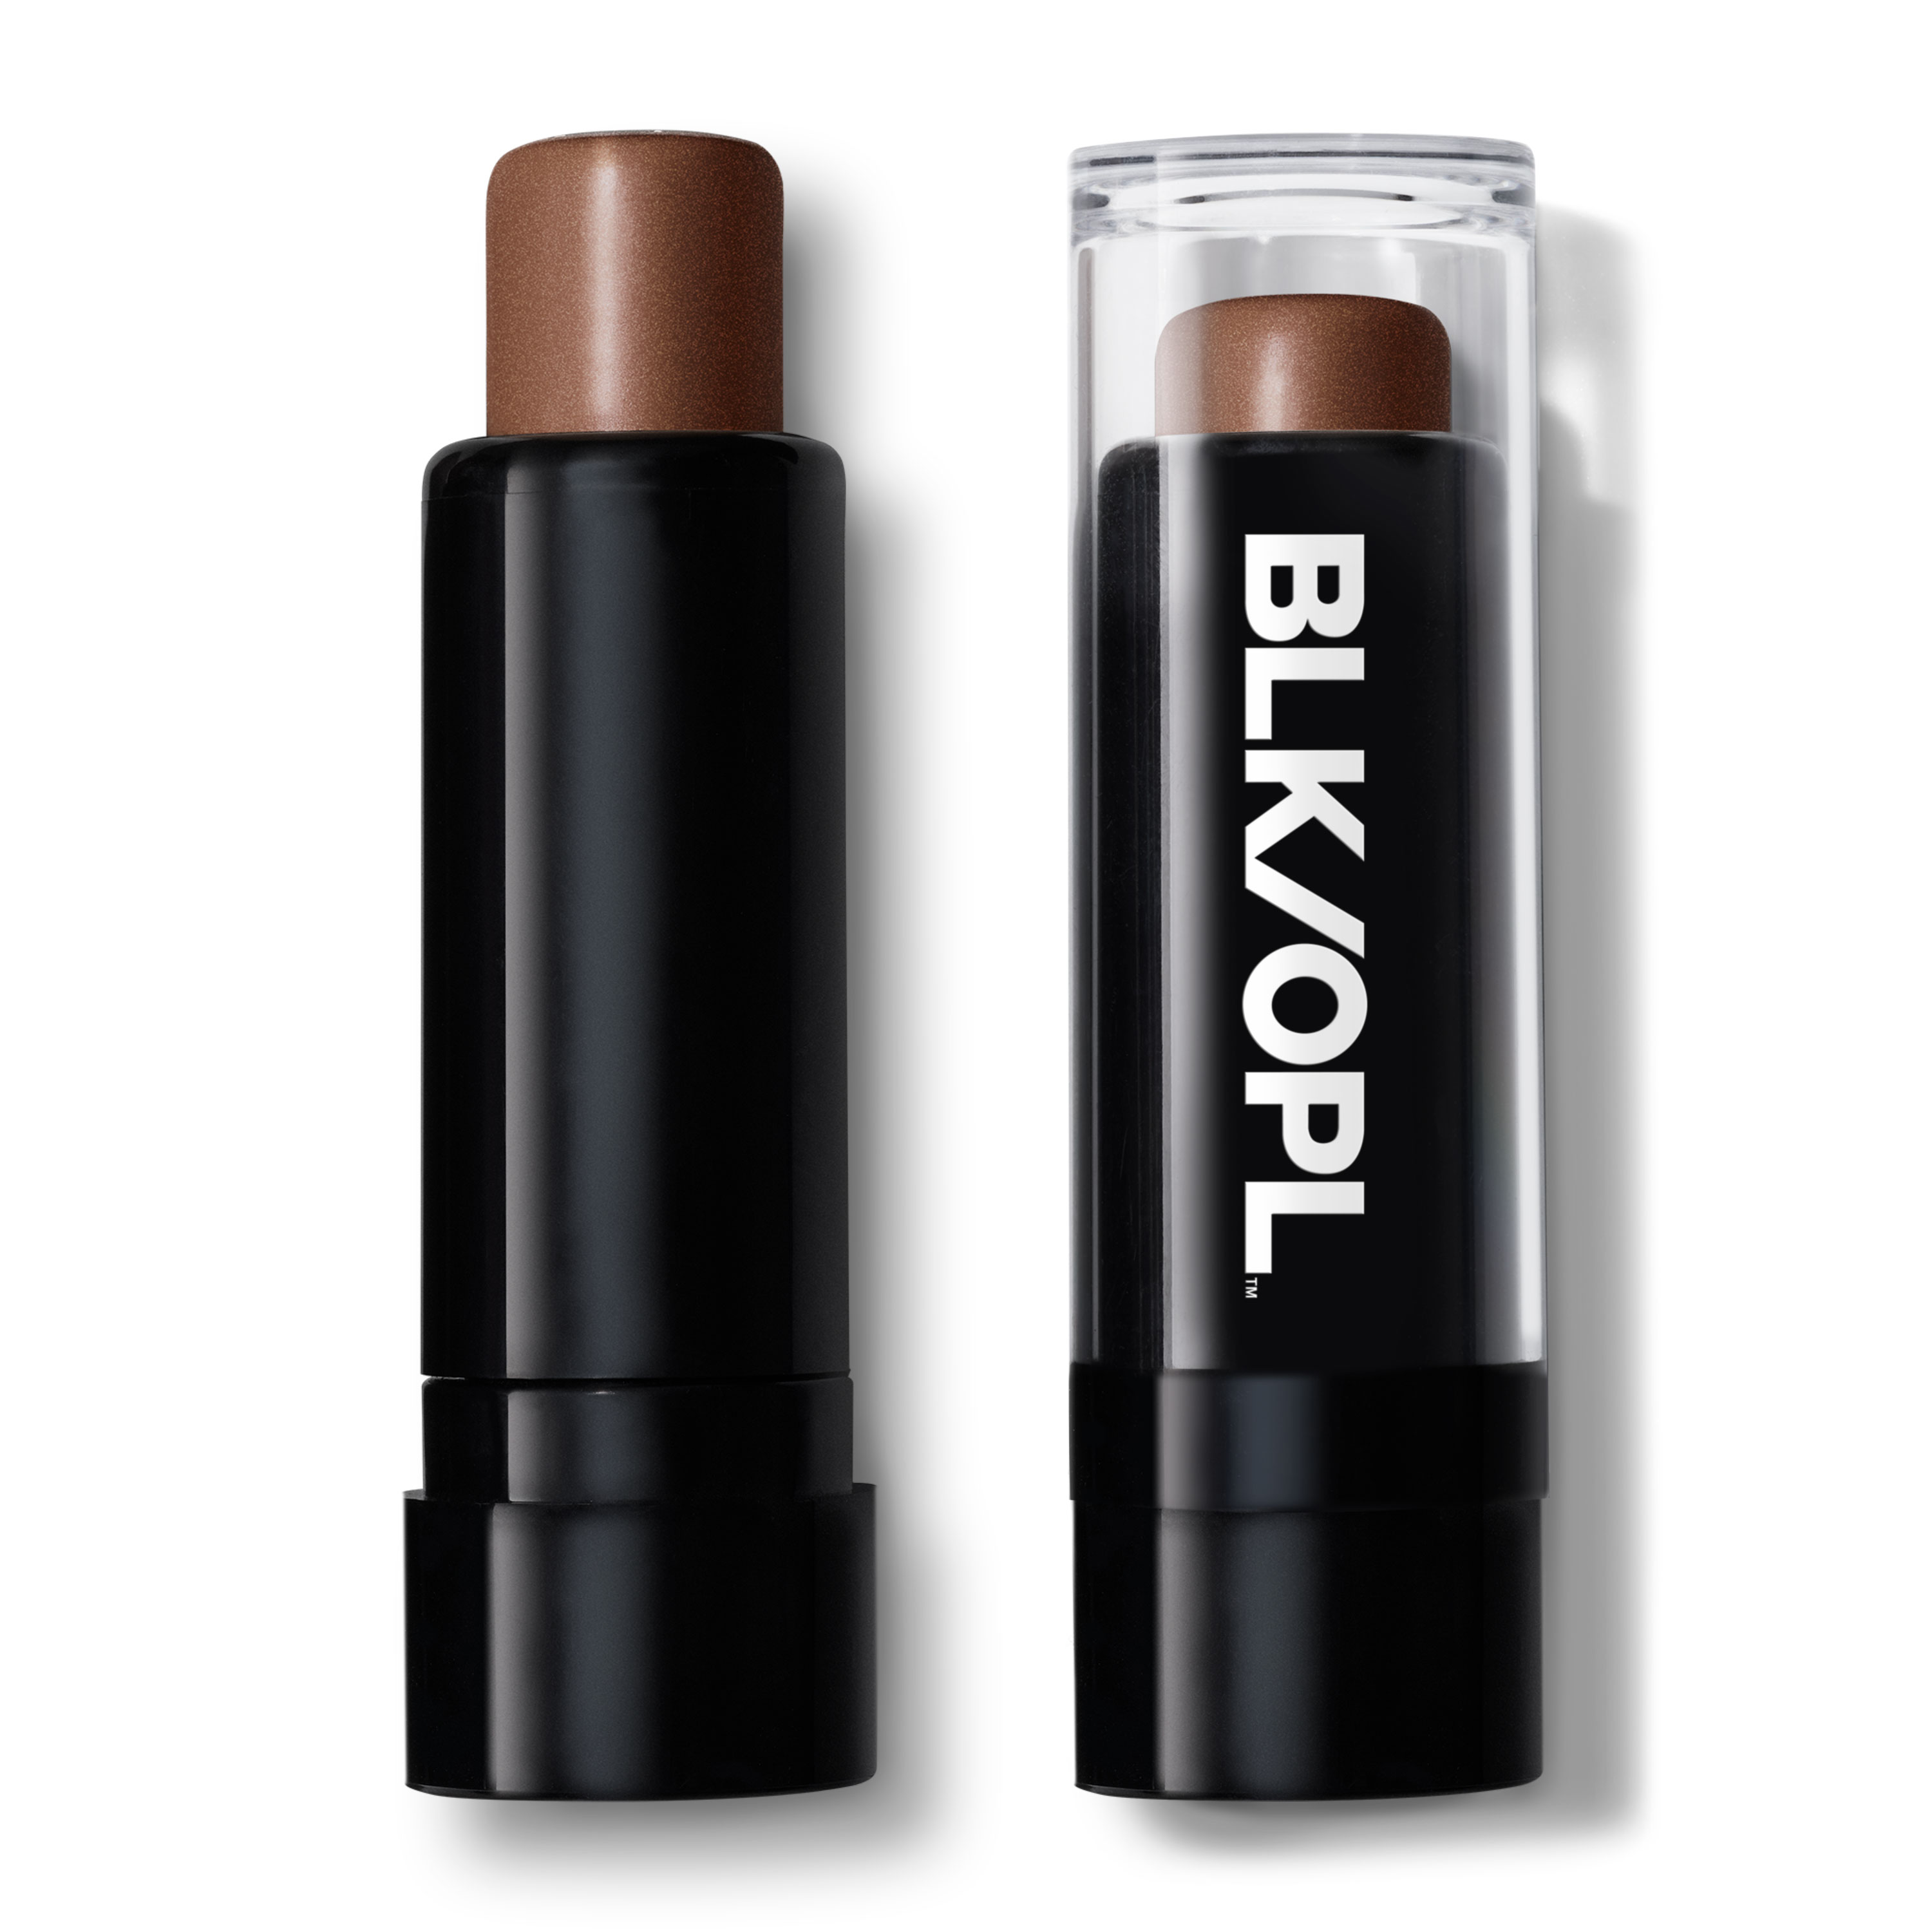 BLK/OPL True Color Illuminating Stick, Highlighter with Vitamin C & E, Nude Glow